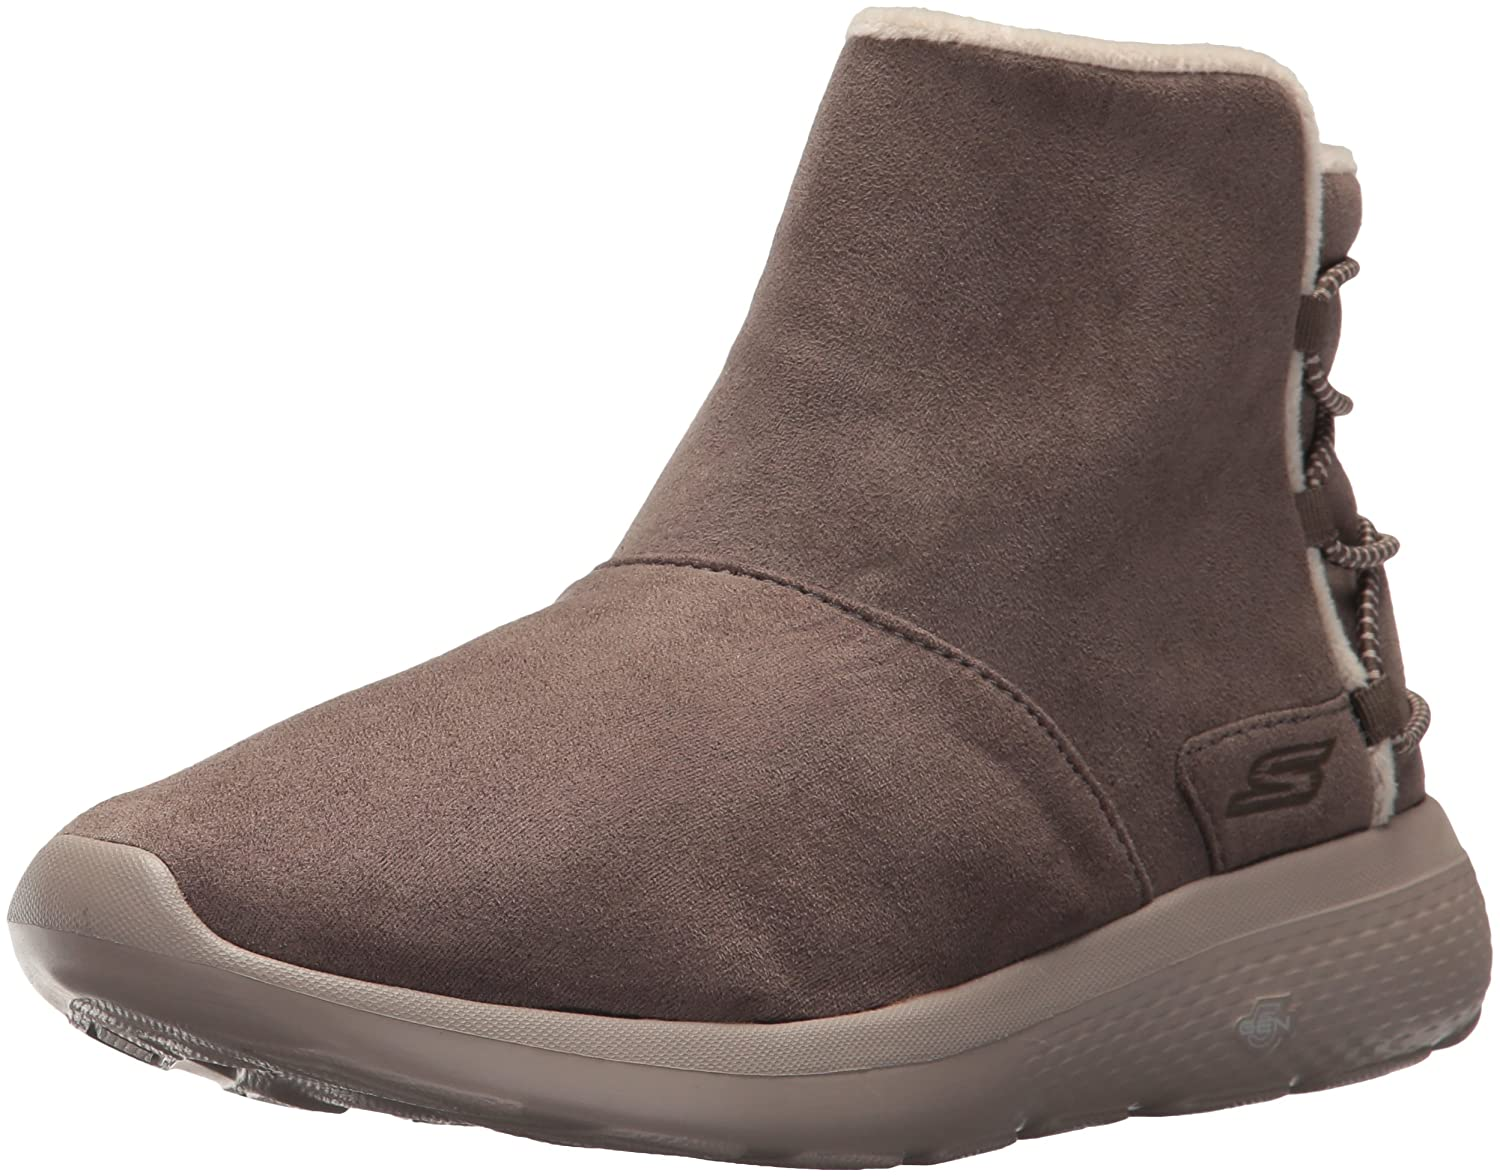 Skechers Damen Stiefeletten On-the-Go City 2 ADAPT Grau/Oliv  395 EU